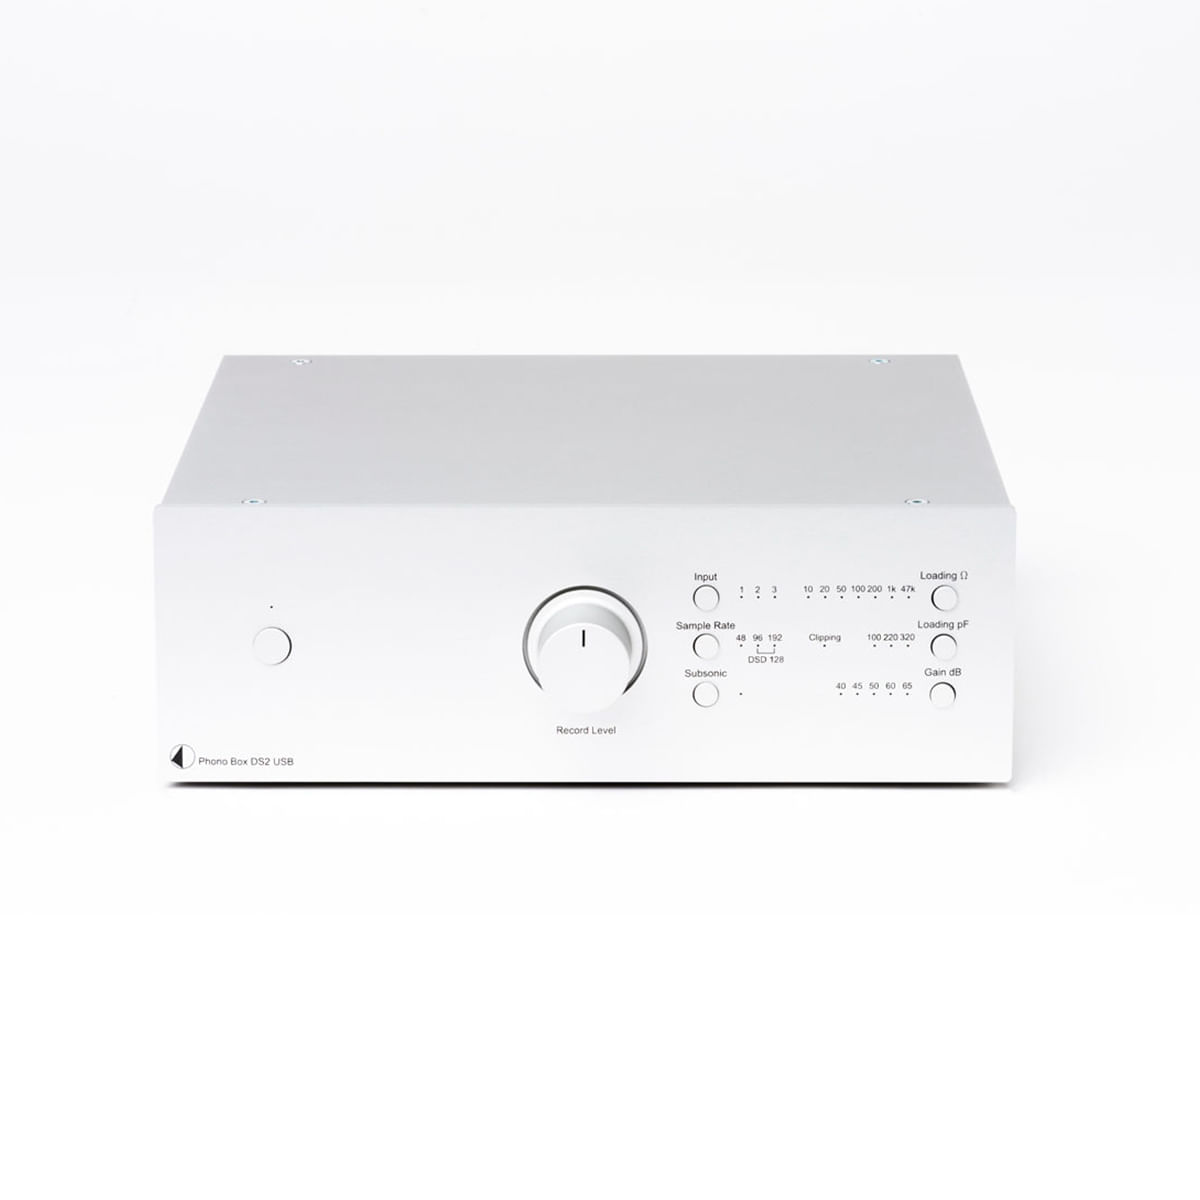 Project-Phono-box-DS2-USB-Frente